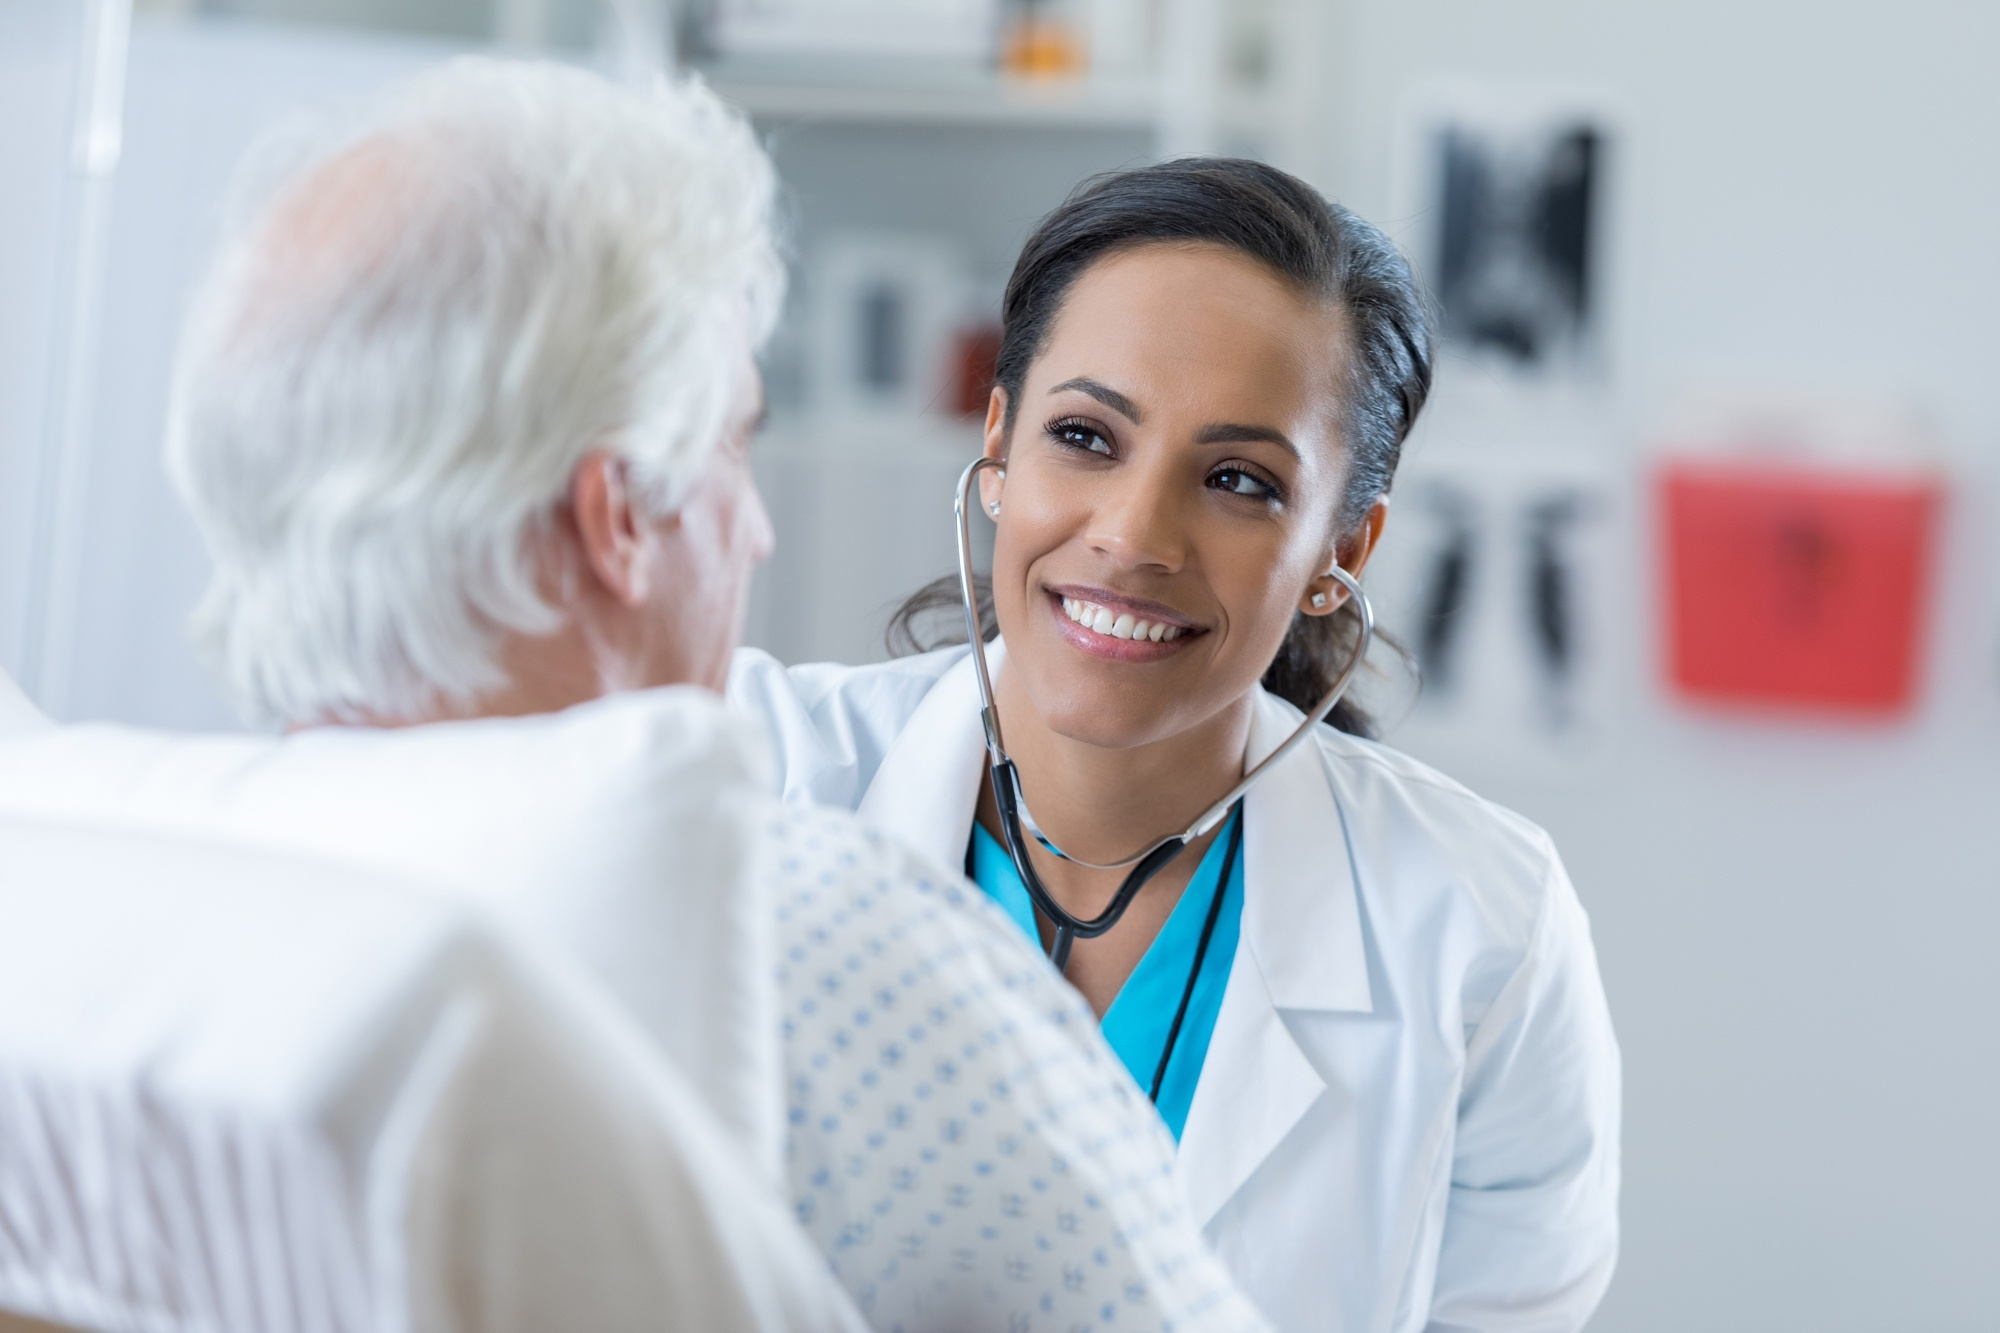 Talk to your doctor about colon cancer screenings.